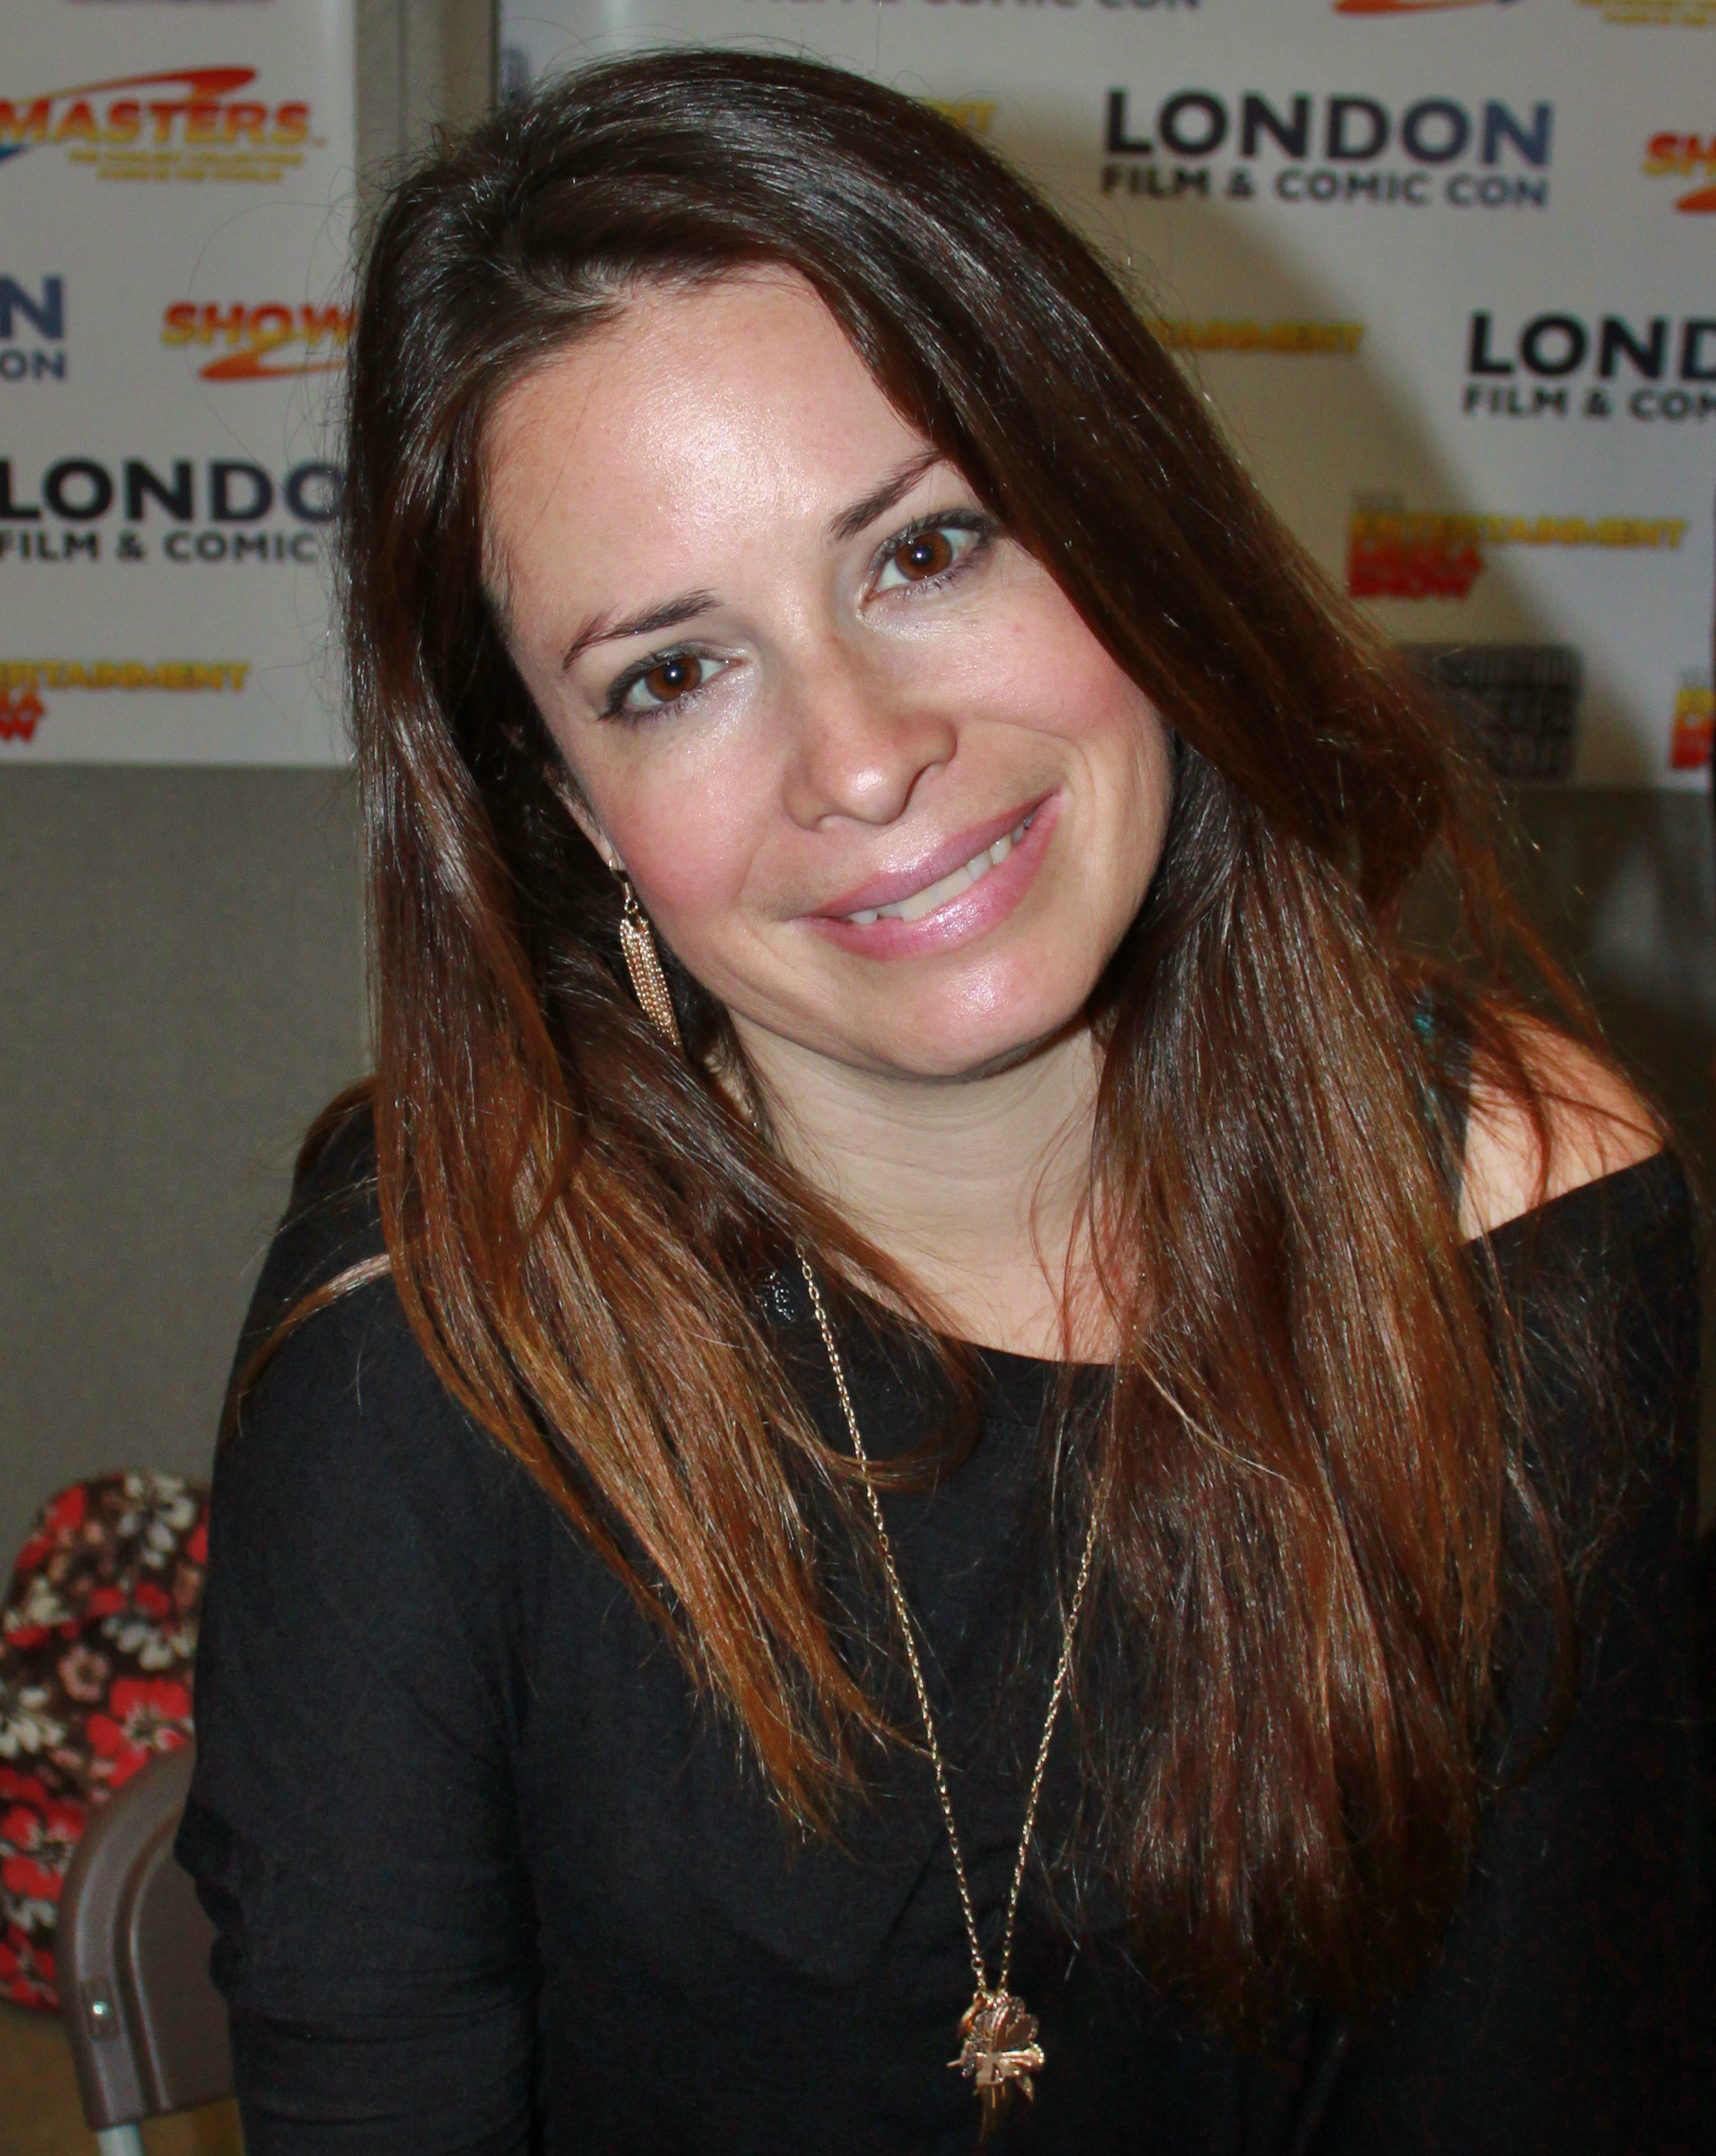 The 44-year old daughter of father (?) and mother(?) Holly Marie Combs in 2018 photo. Holly Marie Combs earned a  million dollar salary - leaving the net worth at 14 million in 2018